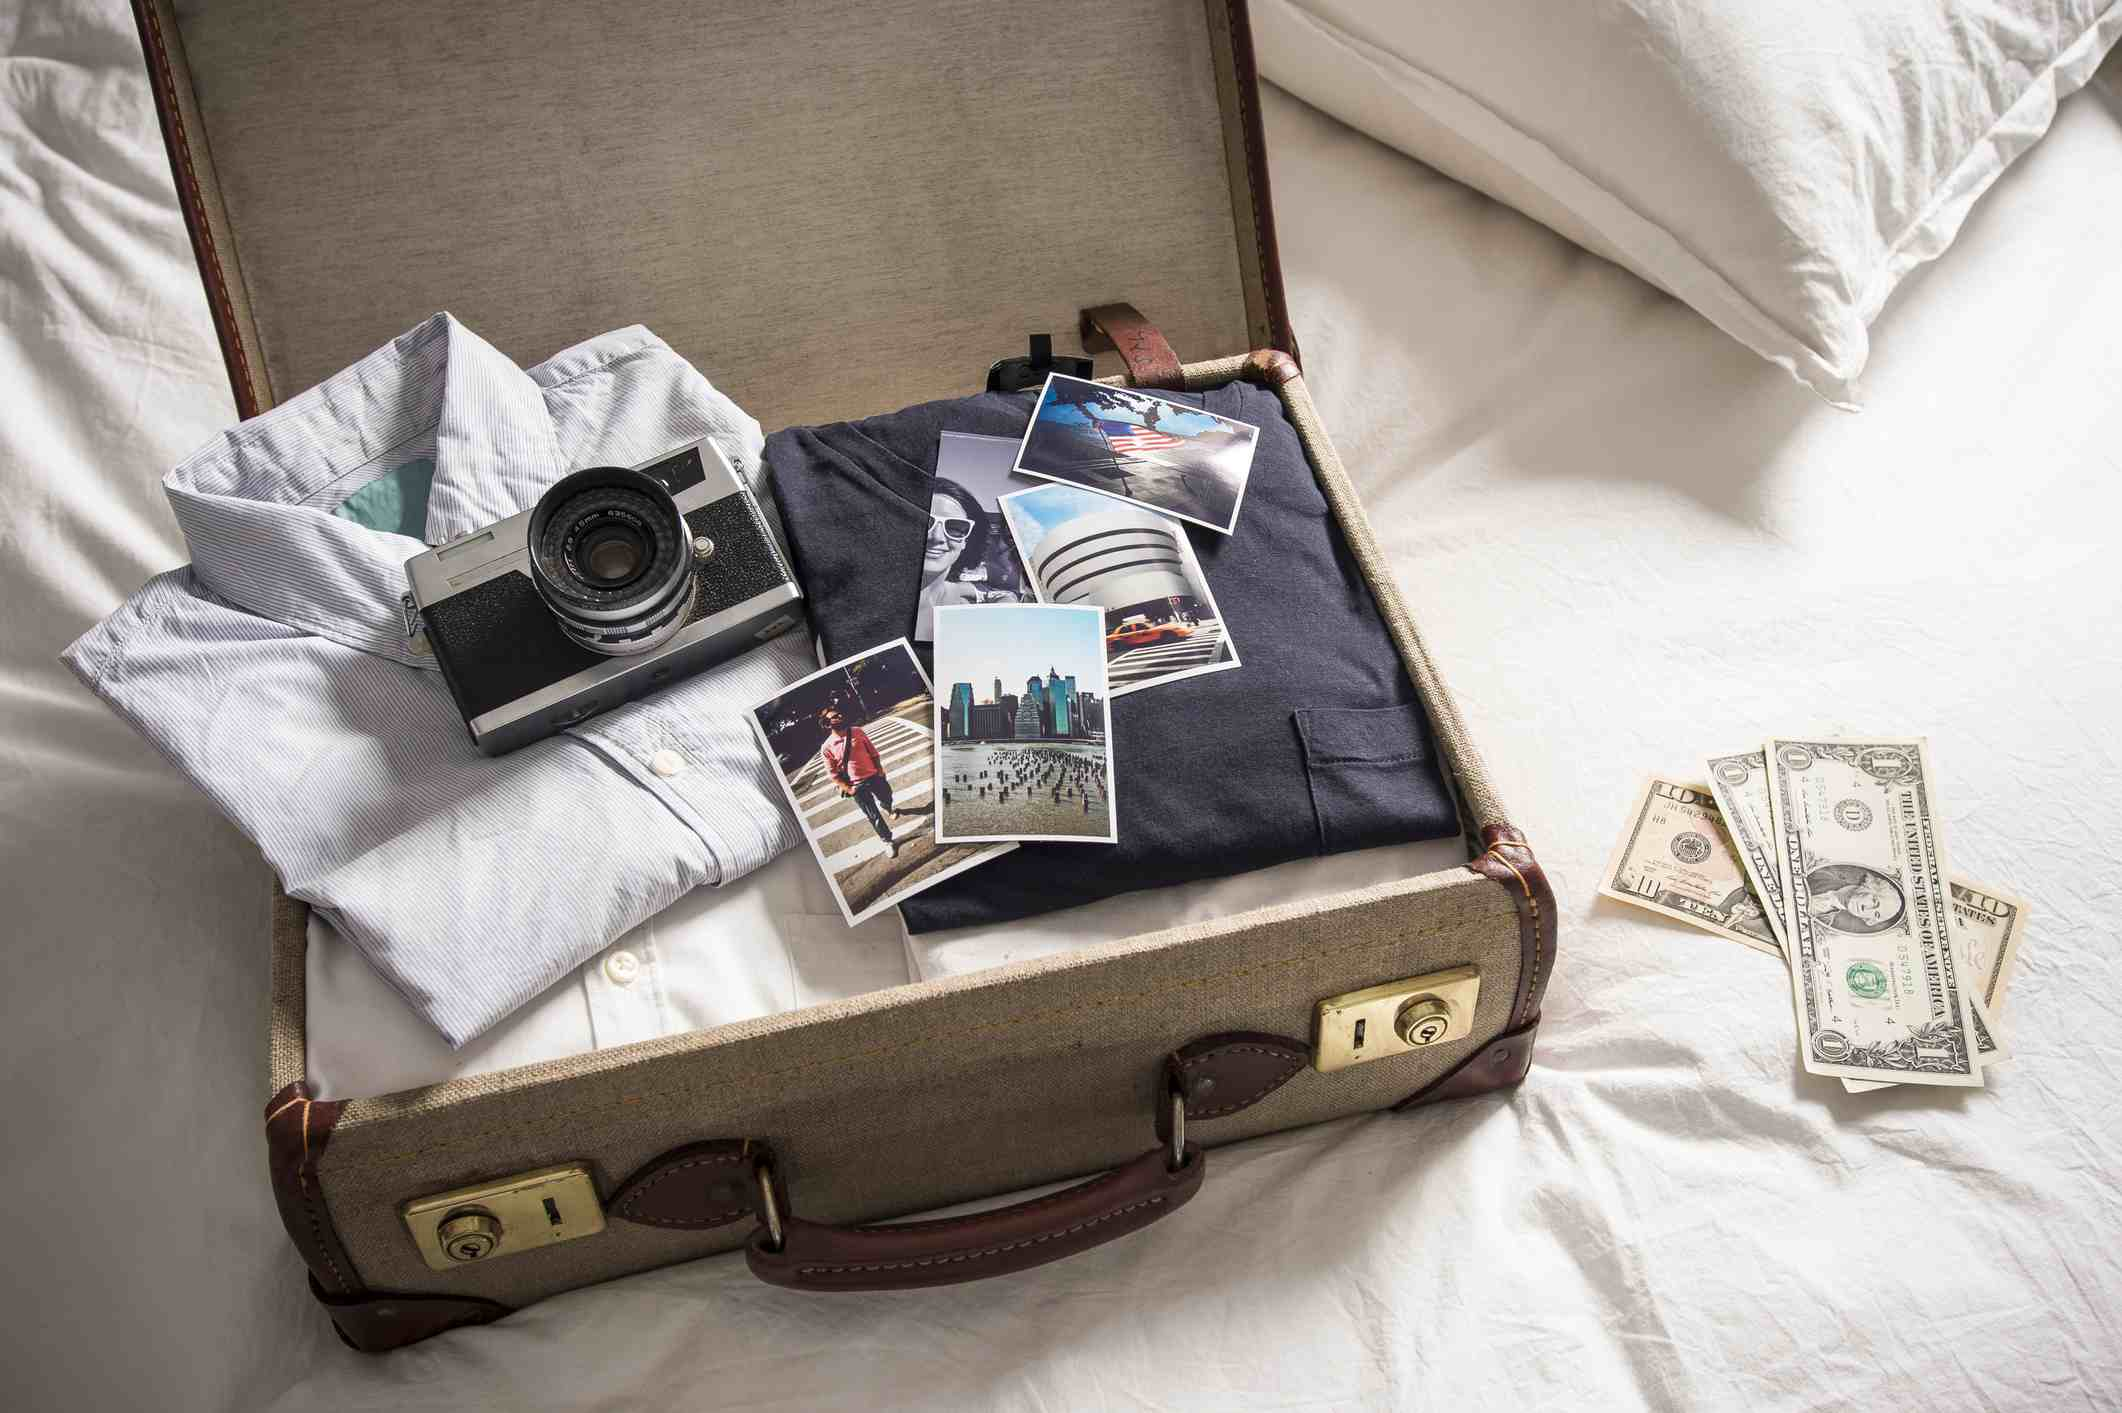 Packing for your holiday